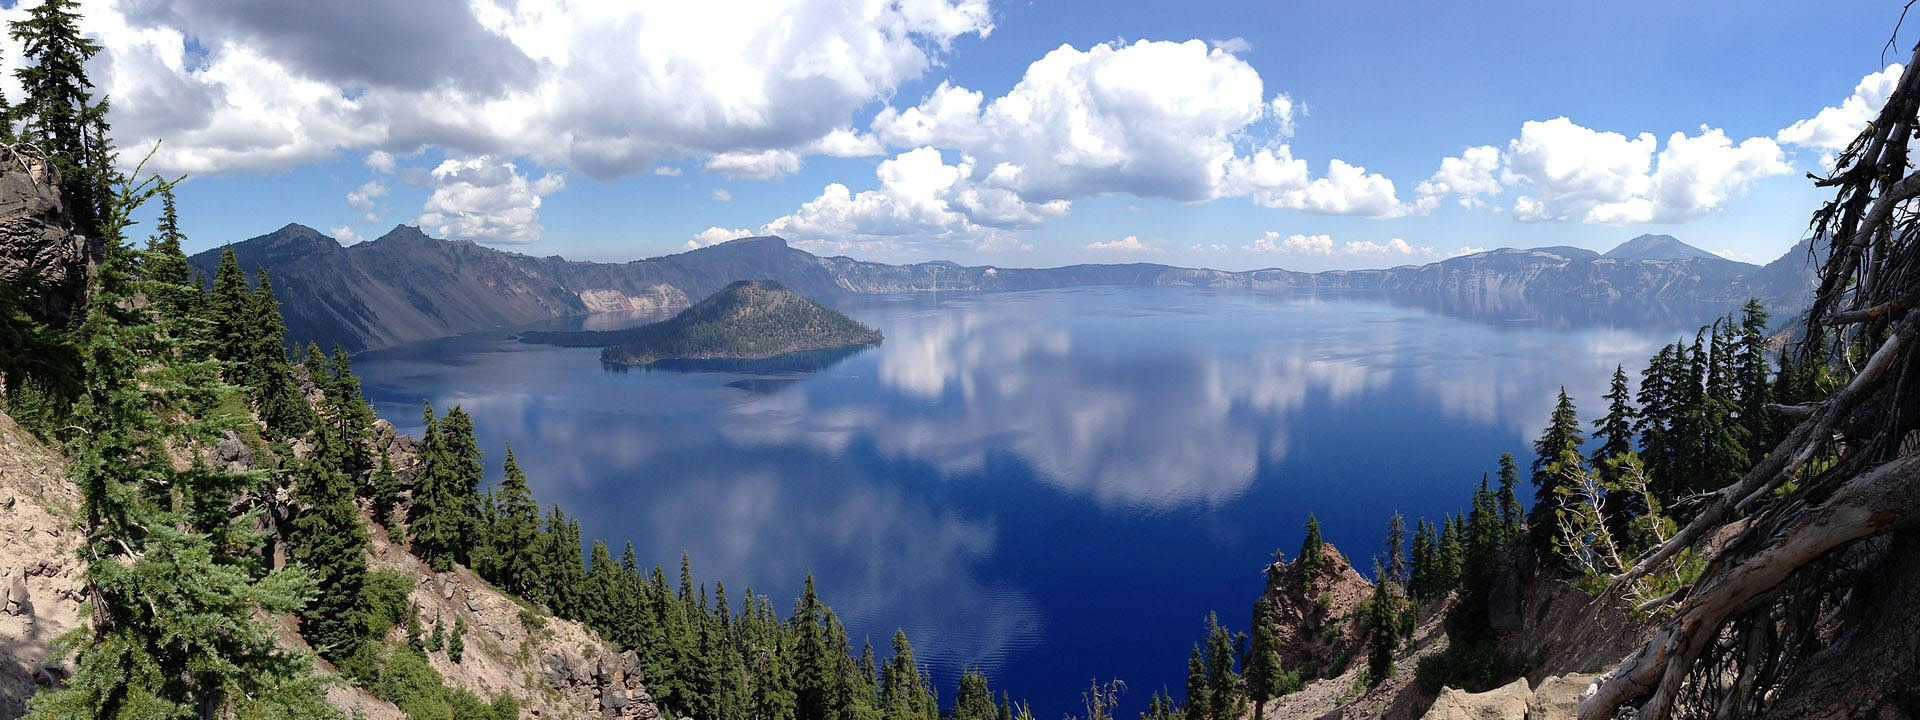 Oregon Cancer Registrar's Association Crater Lake